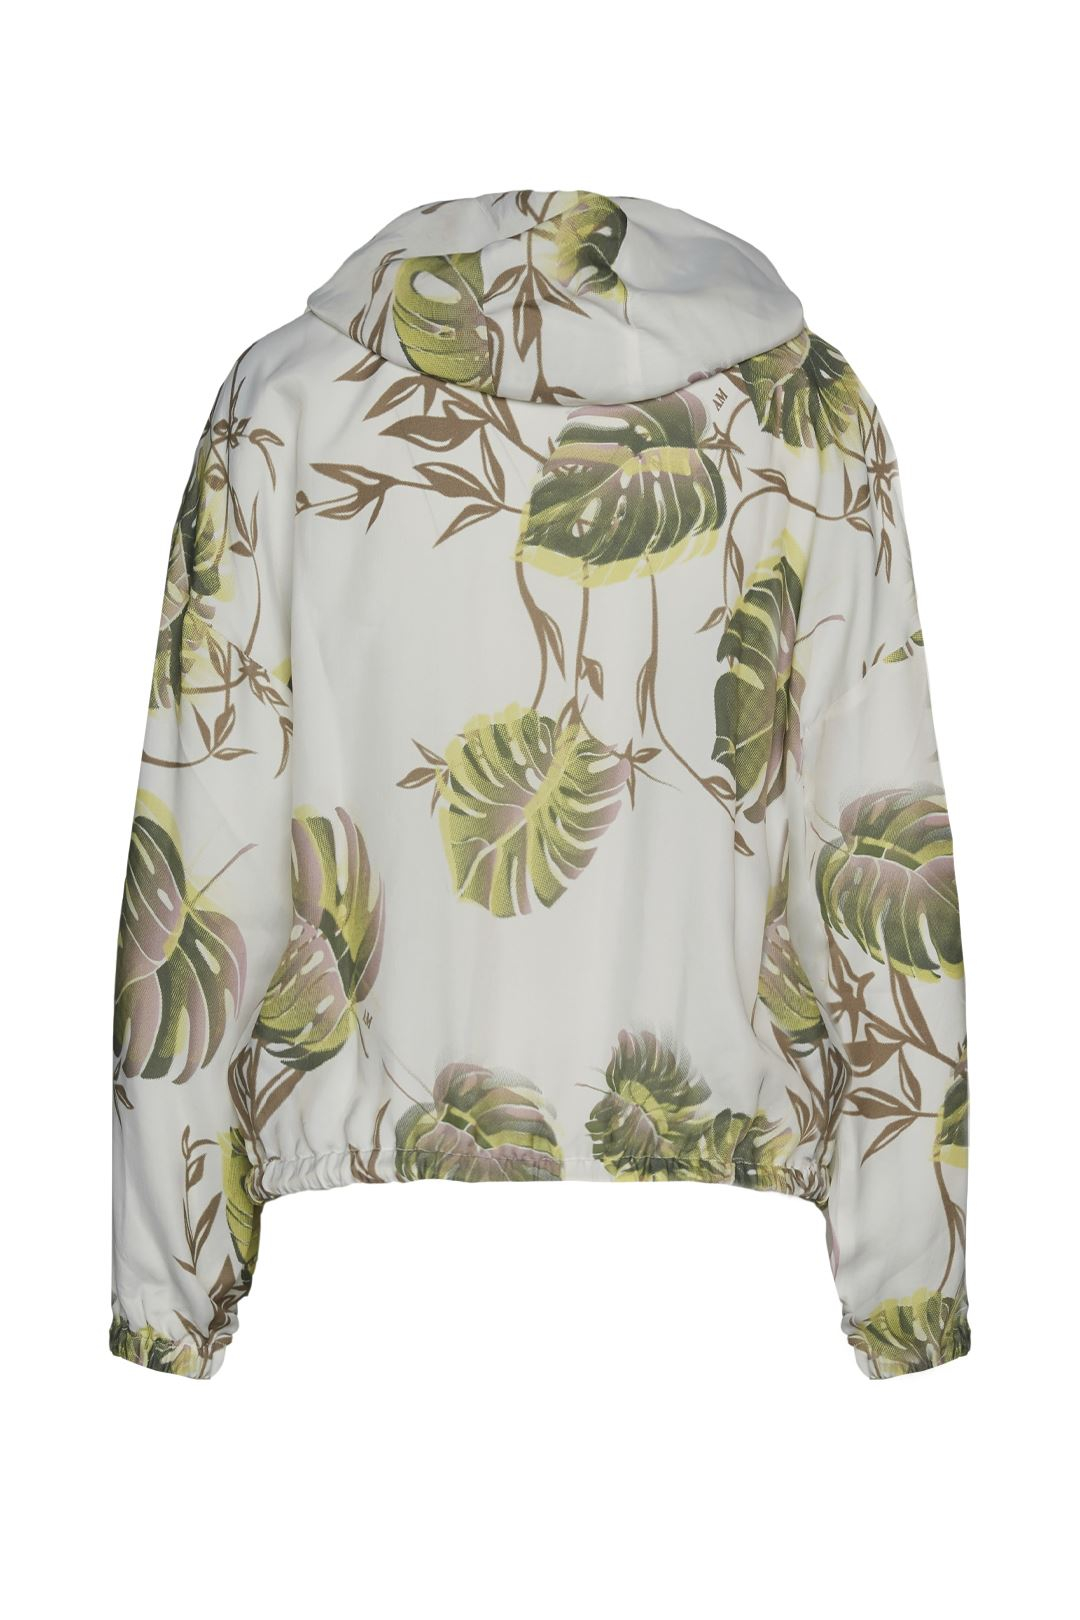 Tropical pattern Jacket                                2